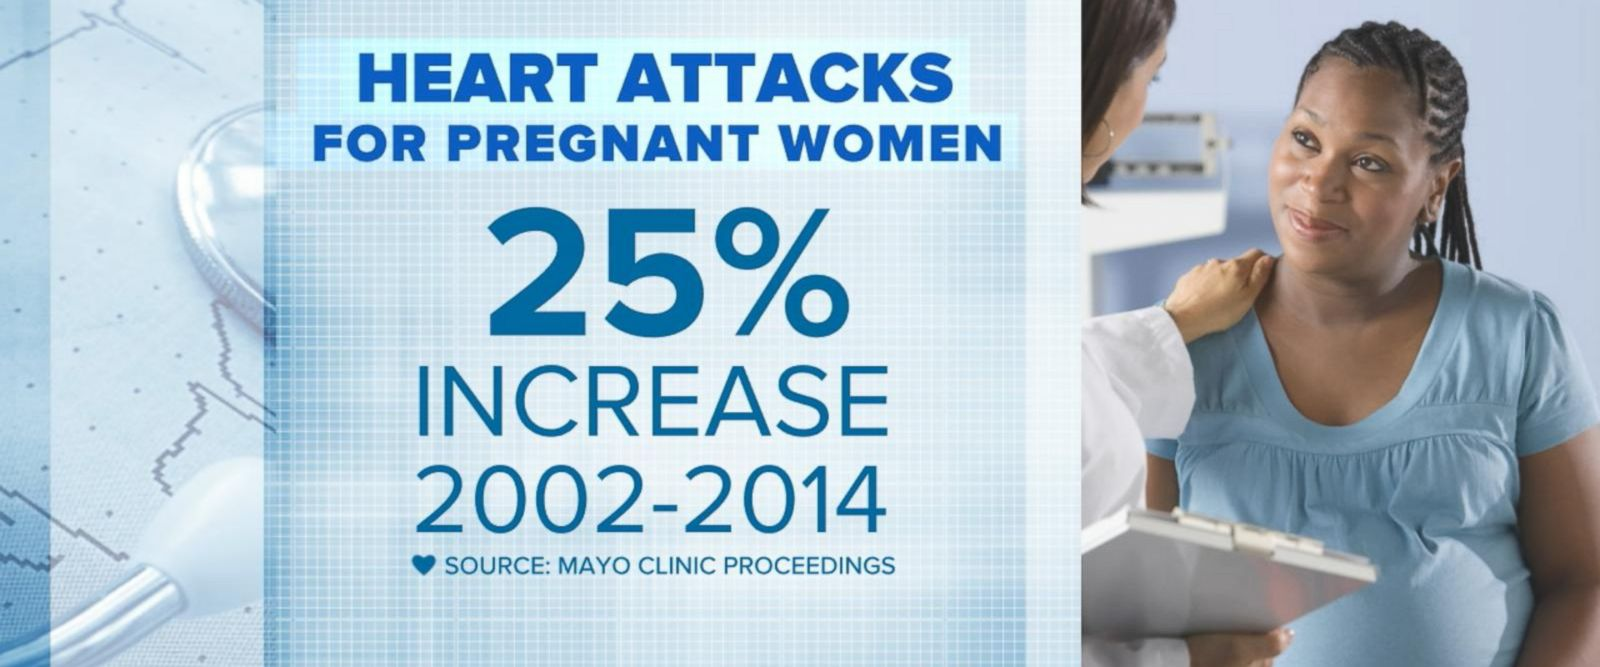 VIDEO: Study shows pregnant women have increased risk for heart attack